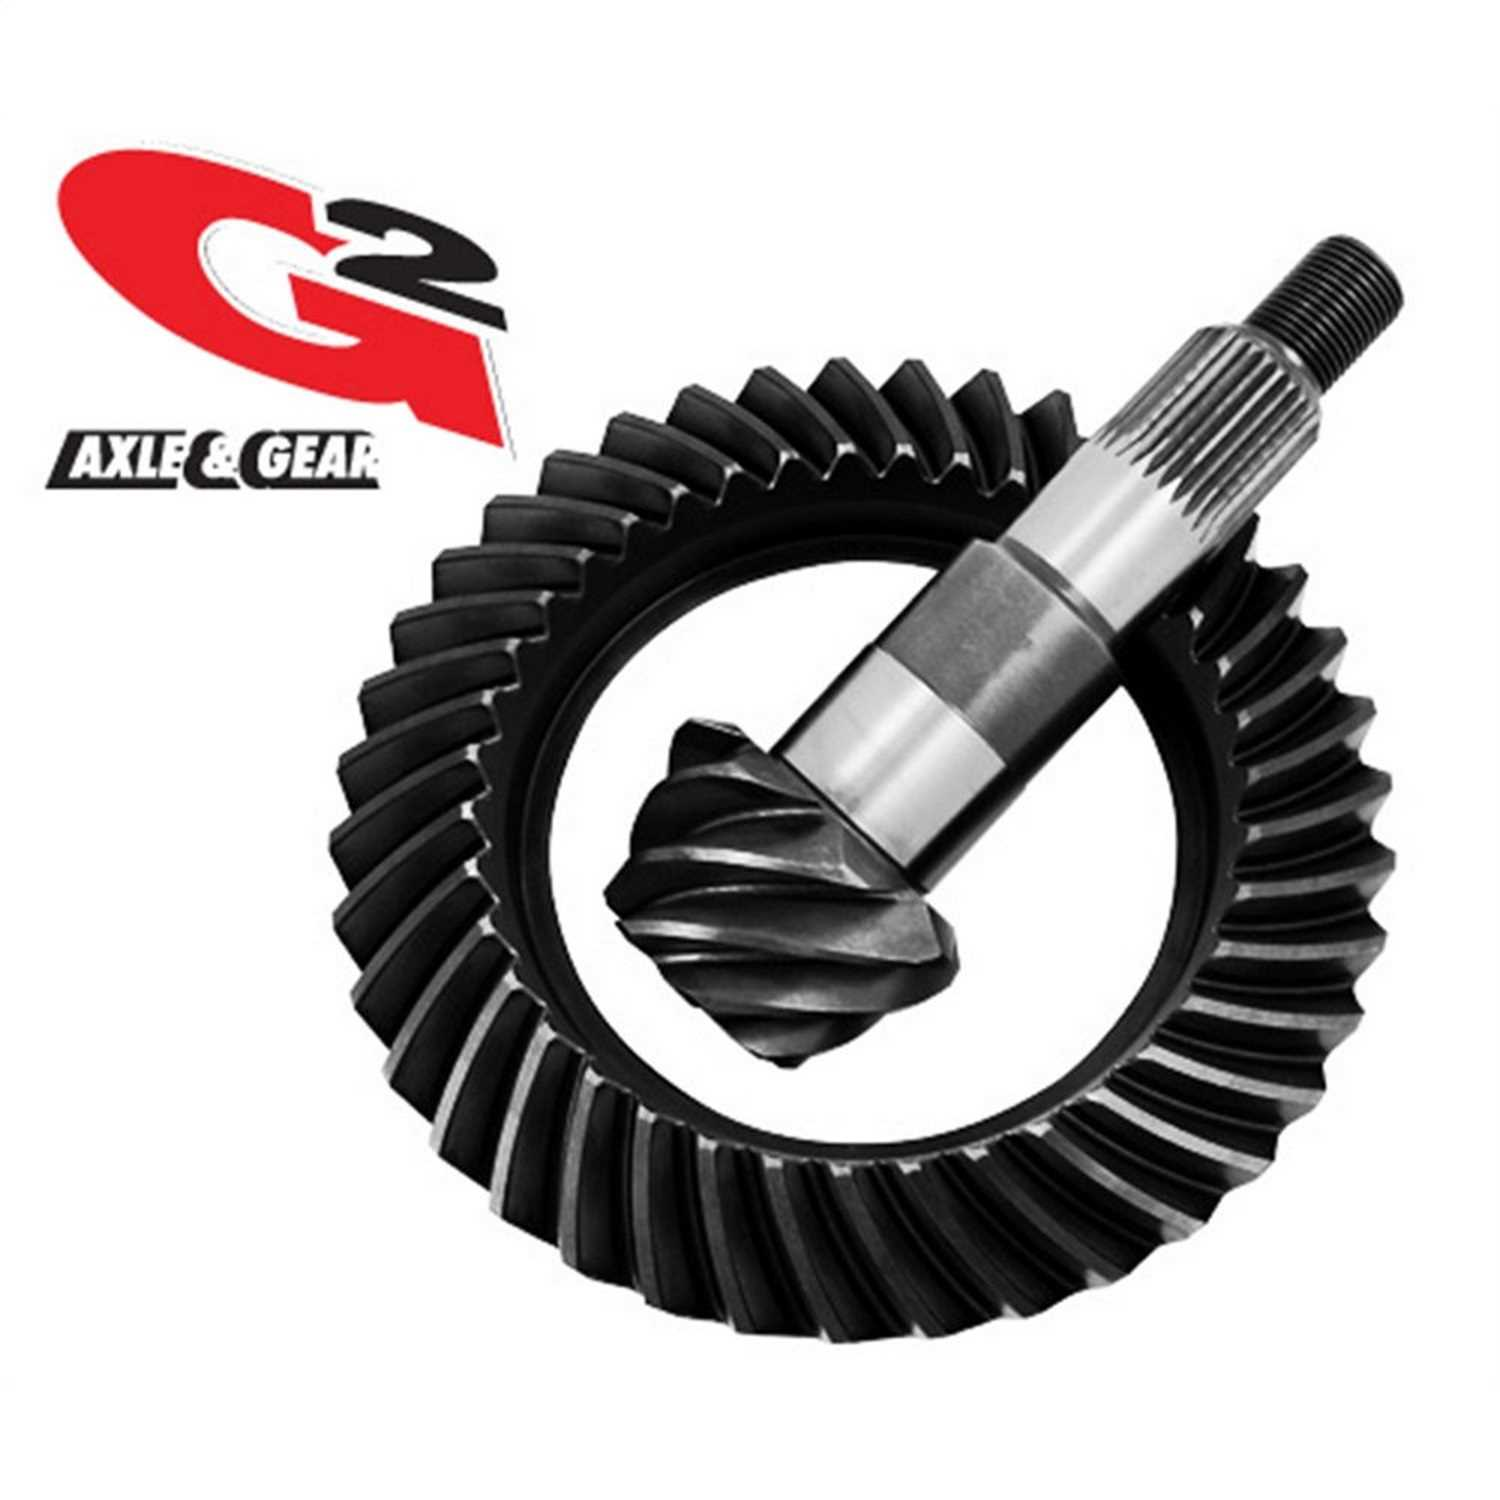 2-2029-410 G2 Axle and Gear Ring and Pinion Set